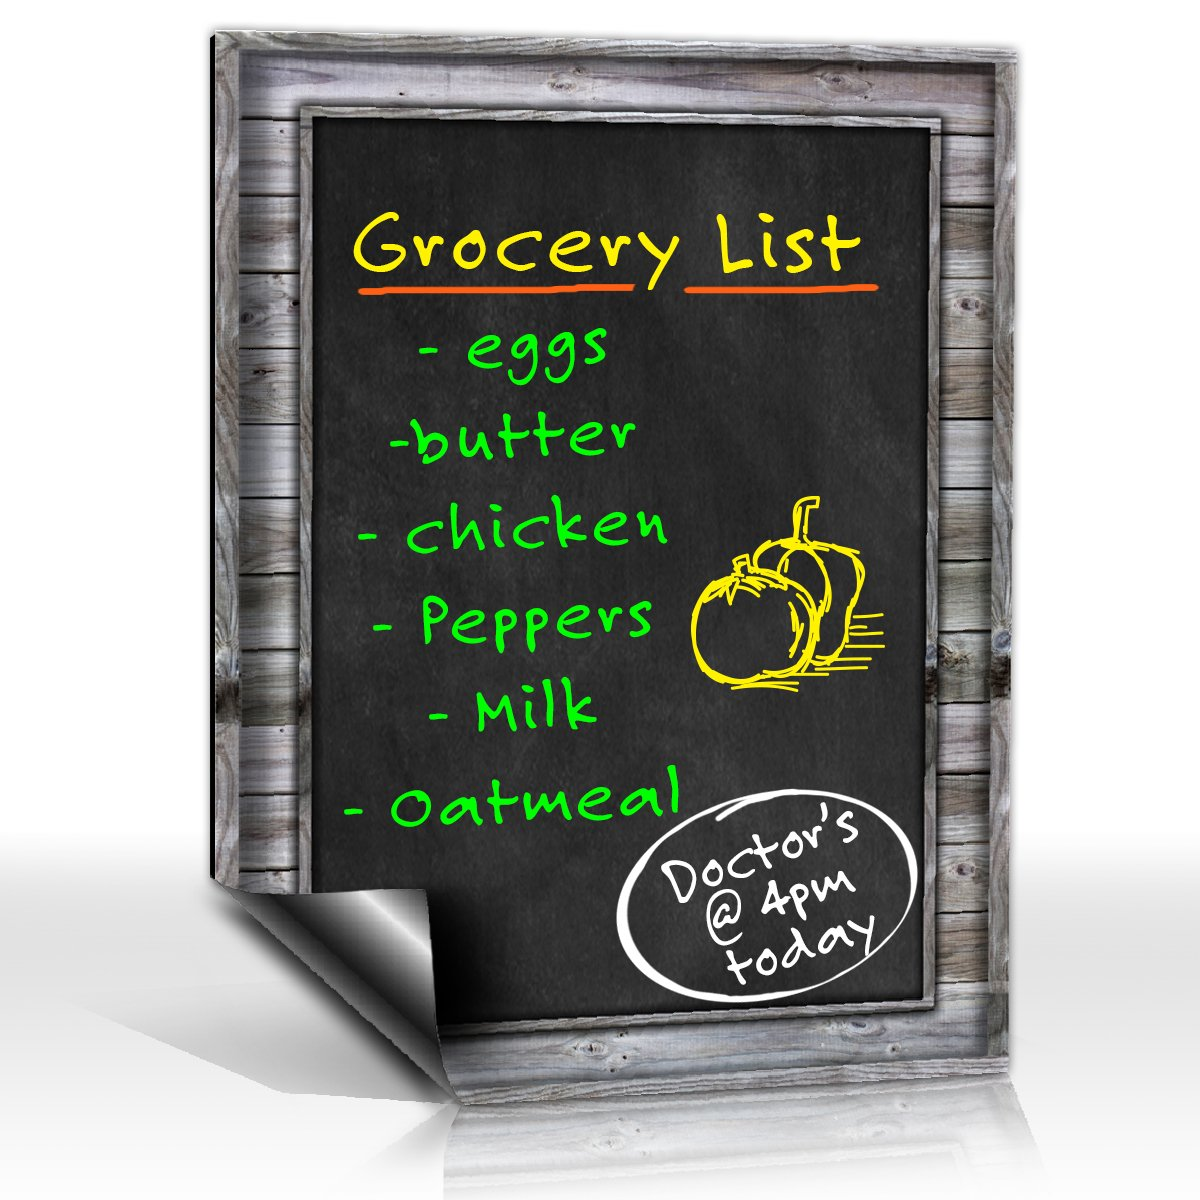 Smart Planner: Black Dry Erase Refrigerator Magnetic Chalkboard Design | Use Horizontal or Vertical as a Weekly Planner for Important Calendar Dates. Meal, Grocery, To Do or Chore List Magnet.